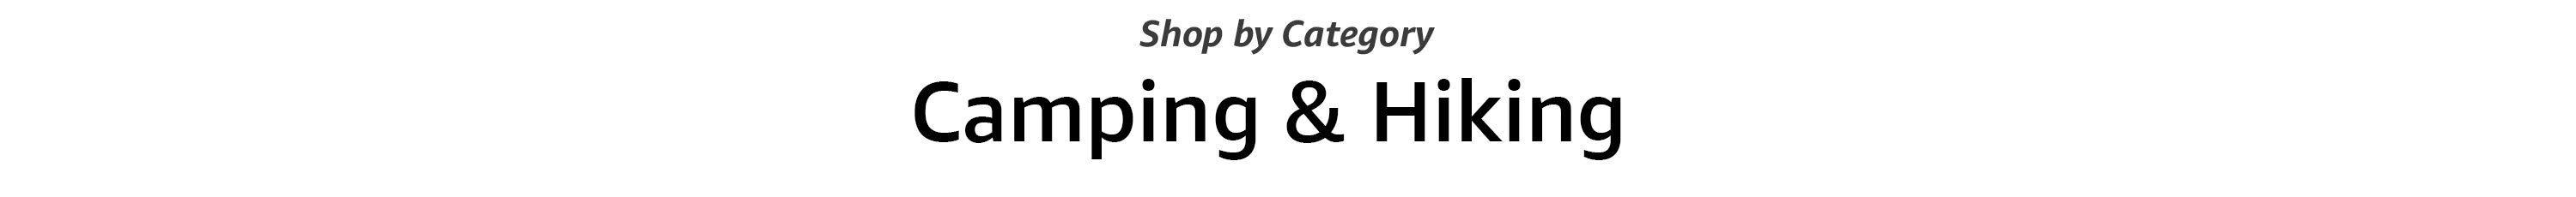 Shop by Category in Camping & Hiking